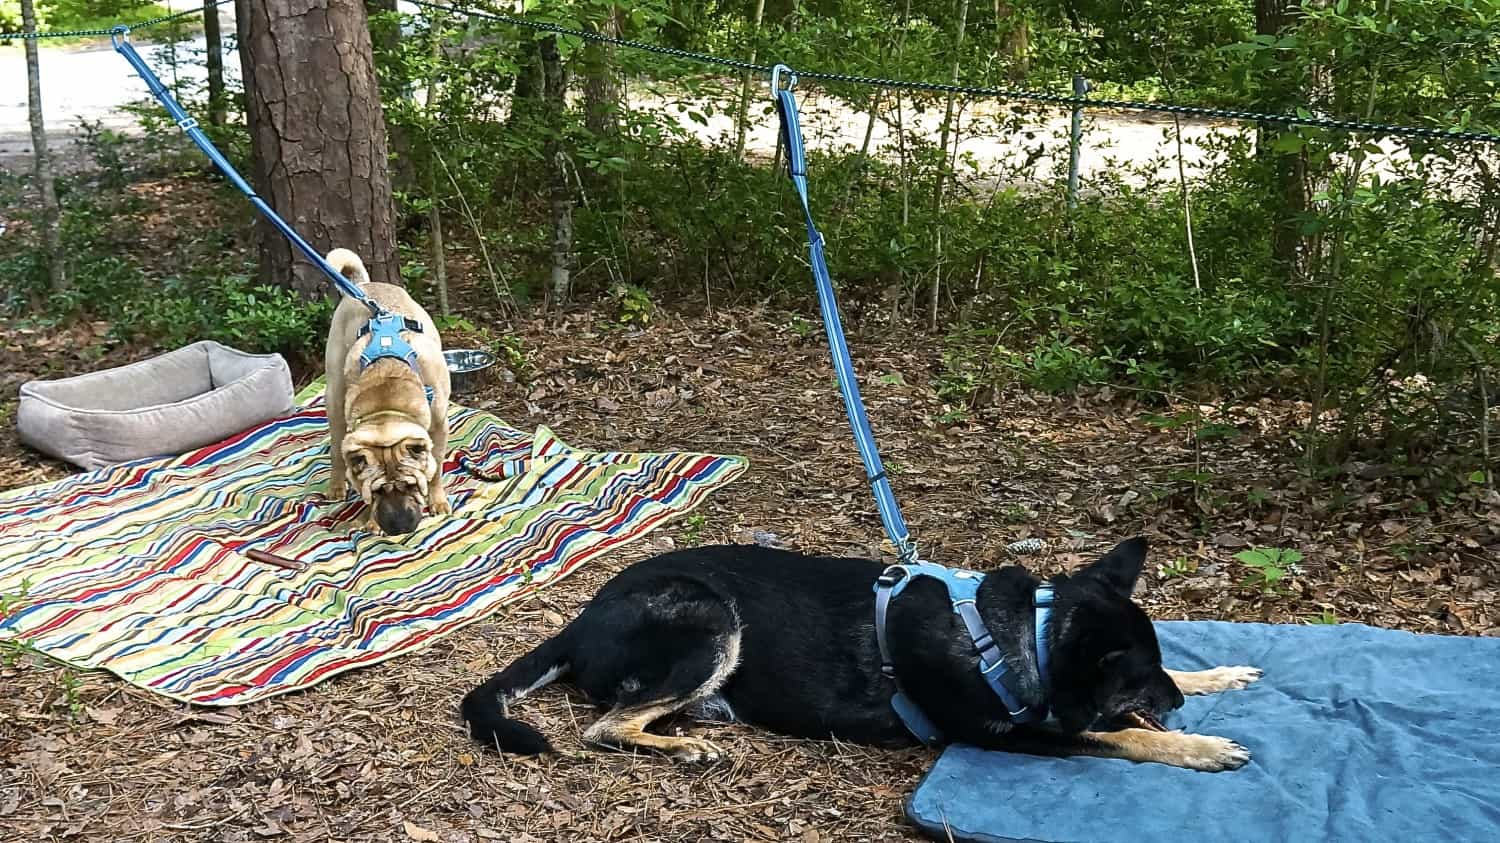 Ty the Shar-pei and Buster the German Shepherd from GoPetFriendly.com relaxing in a campsite on their dog zip line